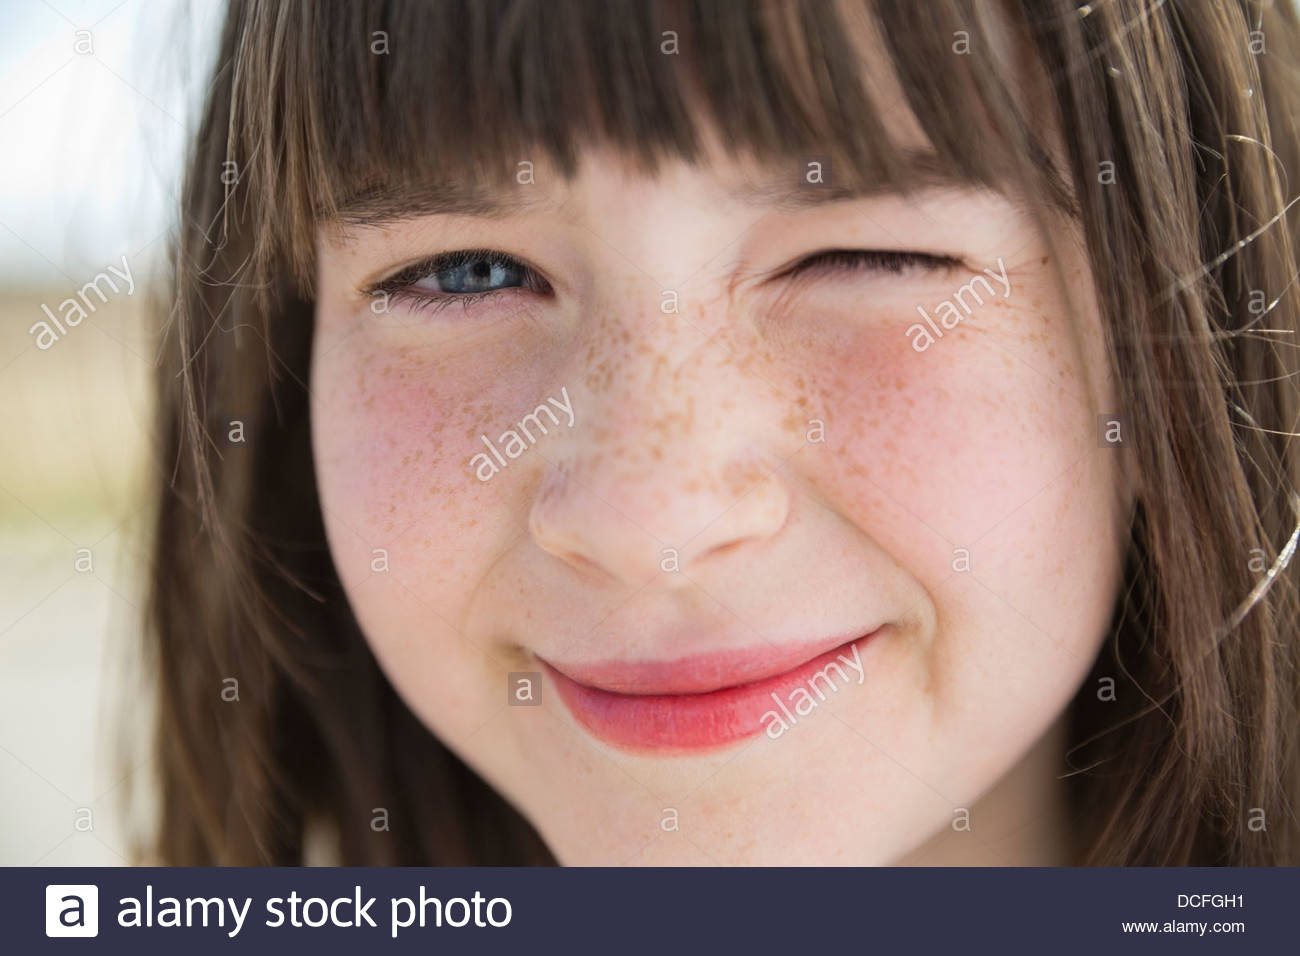 Close-up of little girl winking - Stock Image